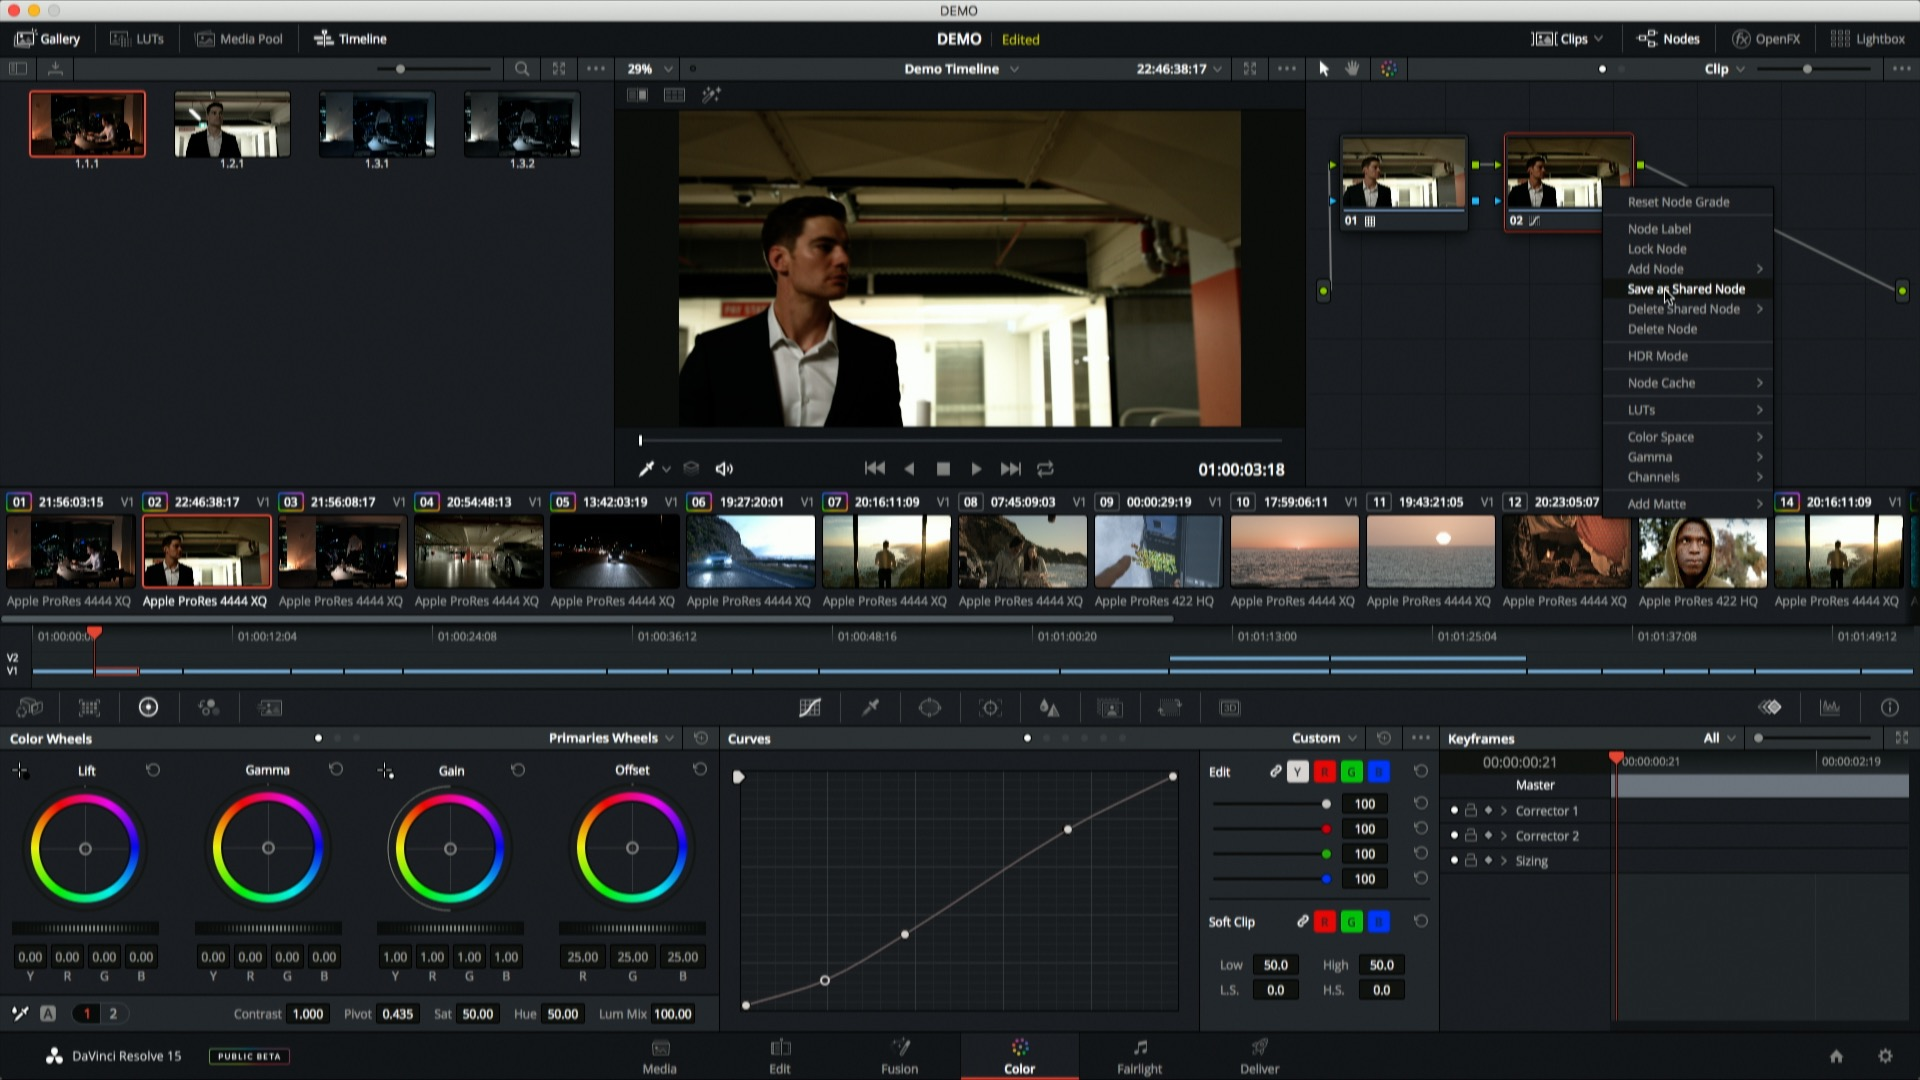 DaVinci Resolve 15 - Shared Nodes